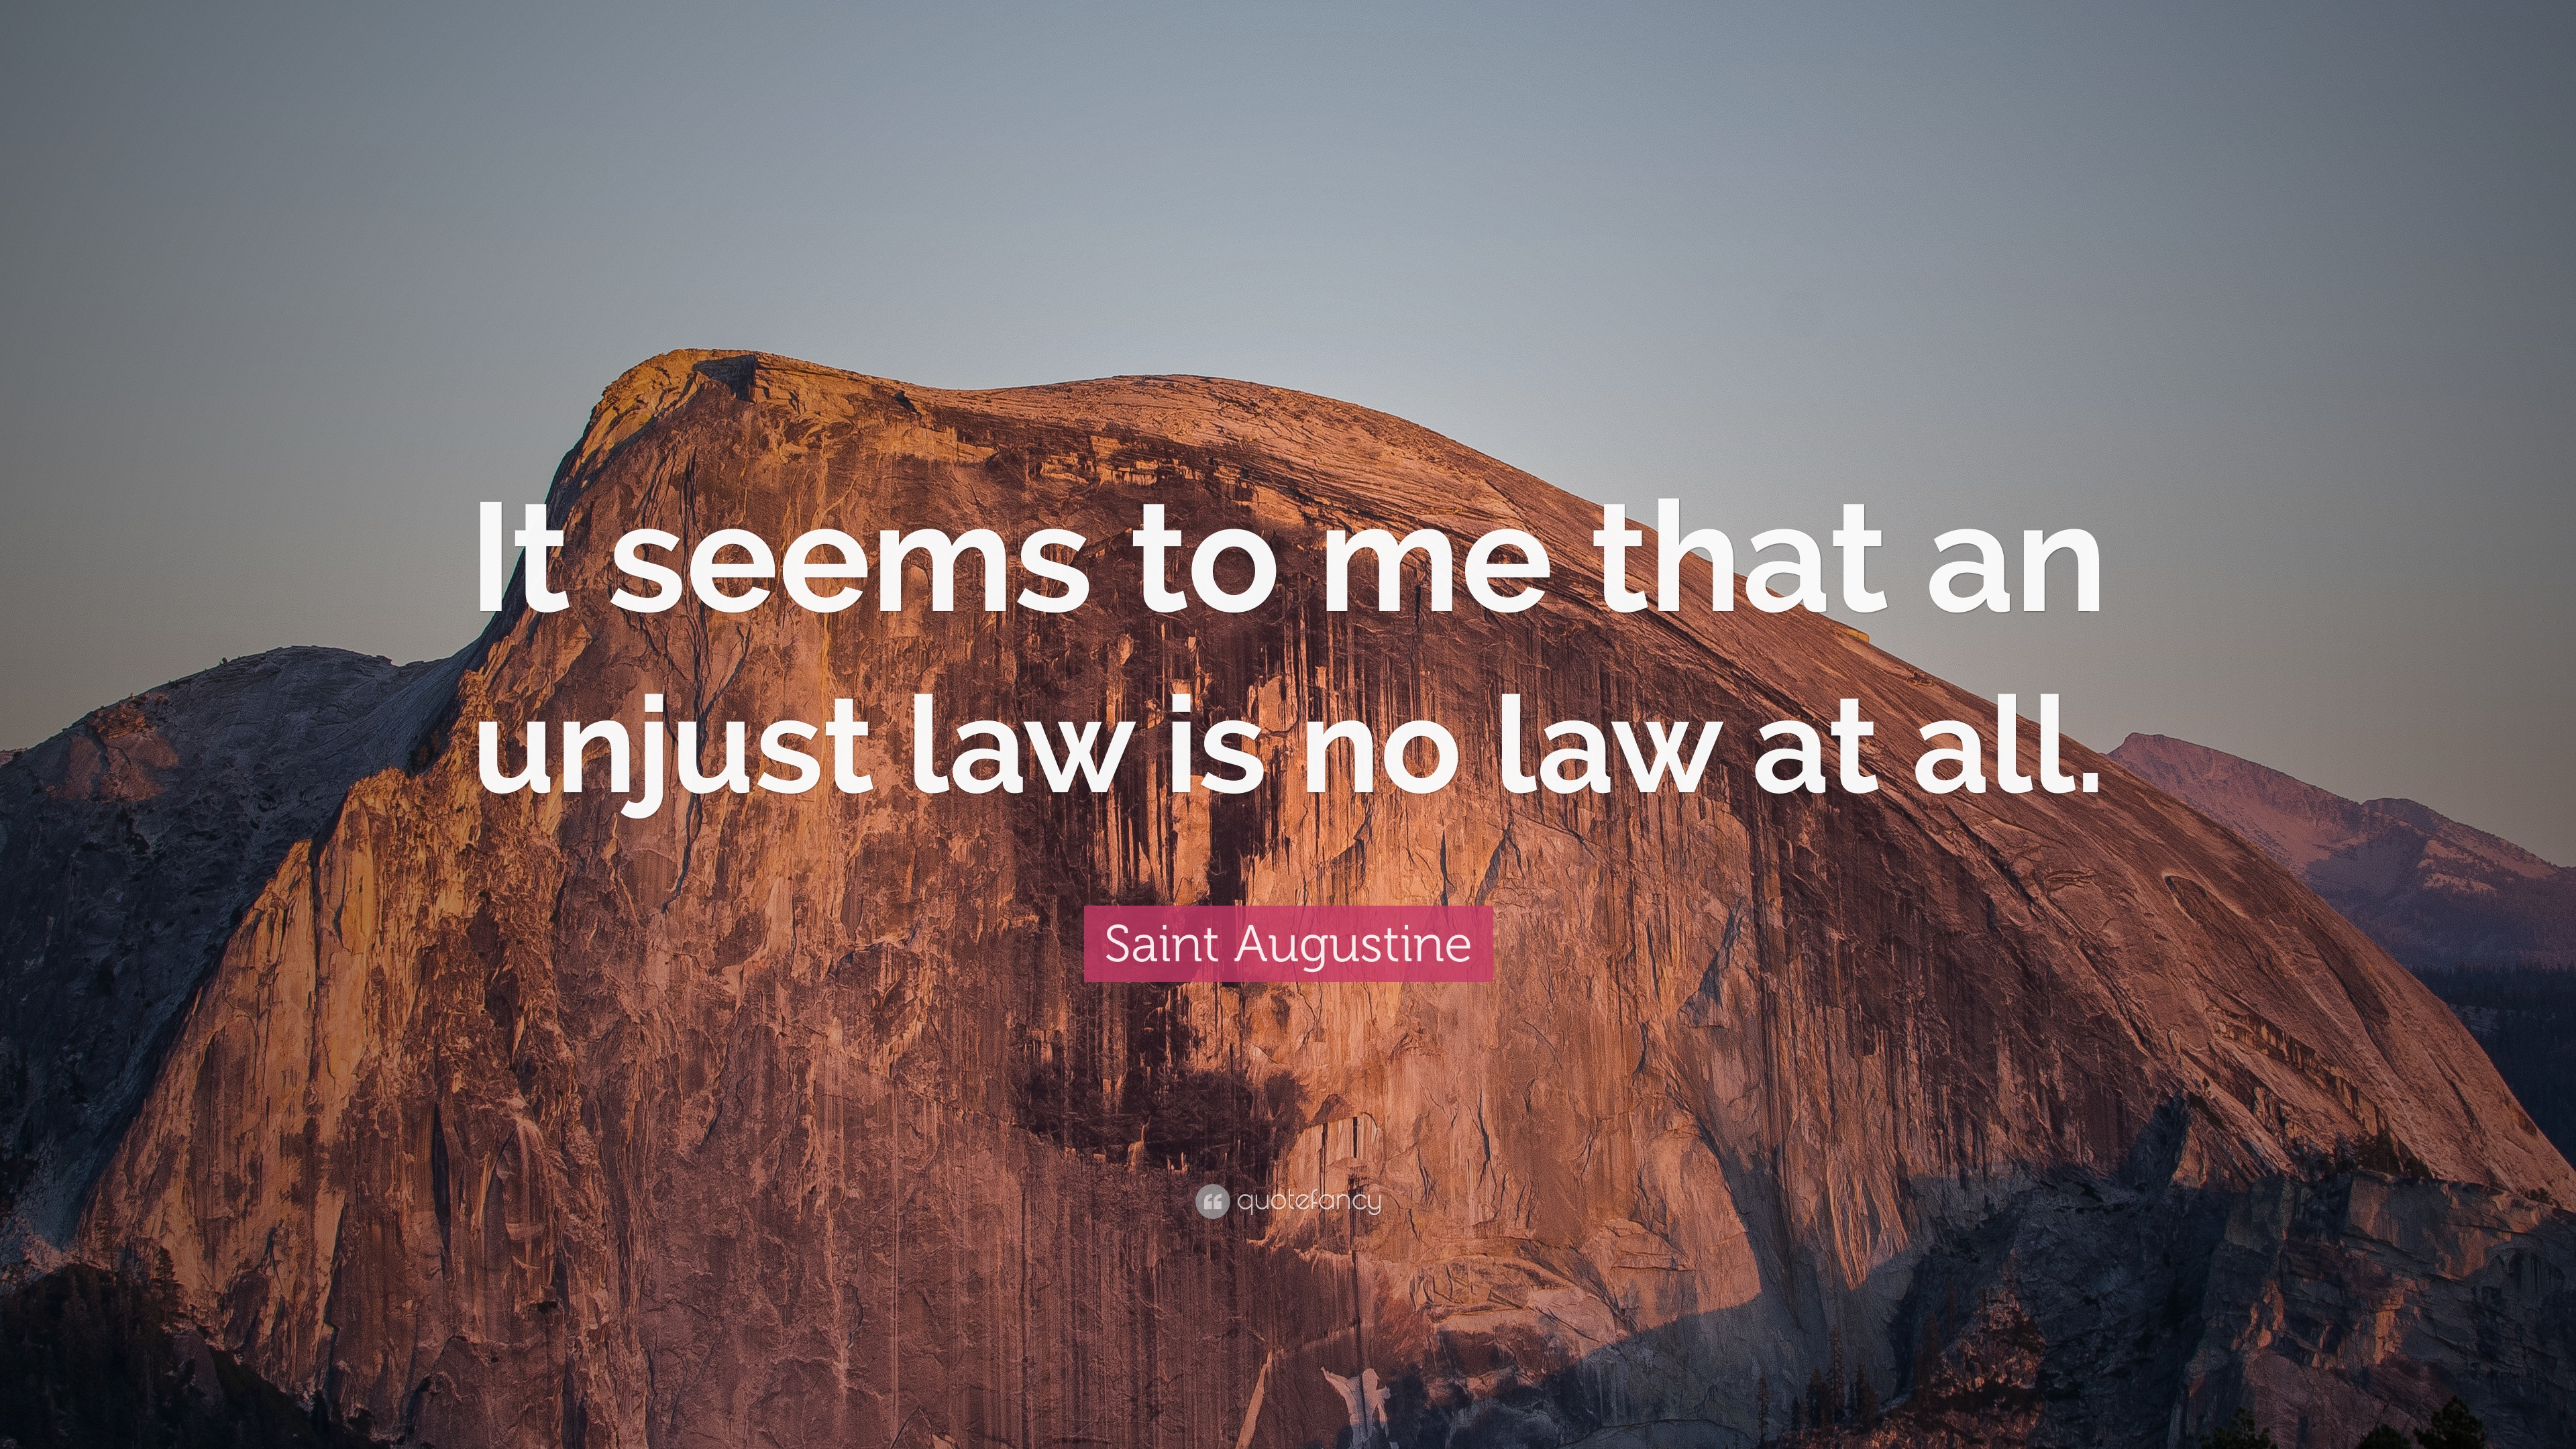 an unjust law is no law at all essay And in any case, challenging an unjust law in court requires civil disobedience someone has to break that law deliberately, in order to be arrested and prosecuted for it, so that the case arrives in court in the first place.